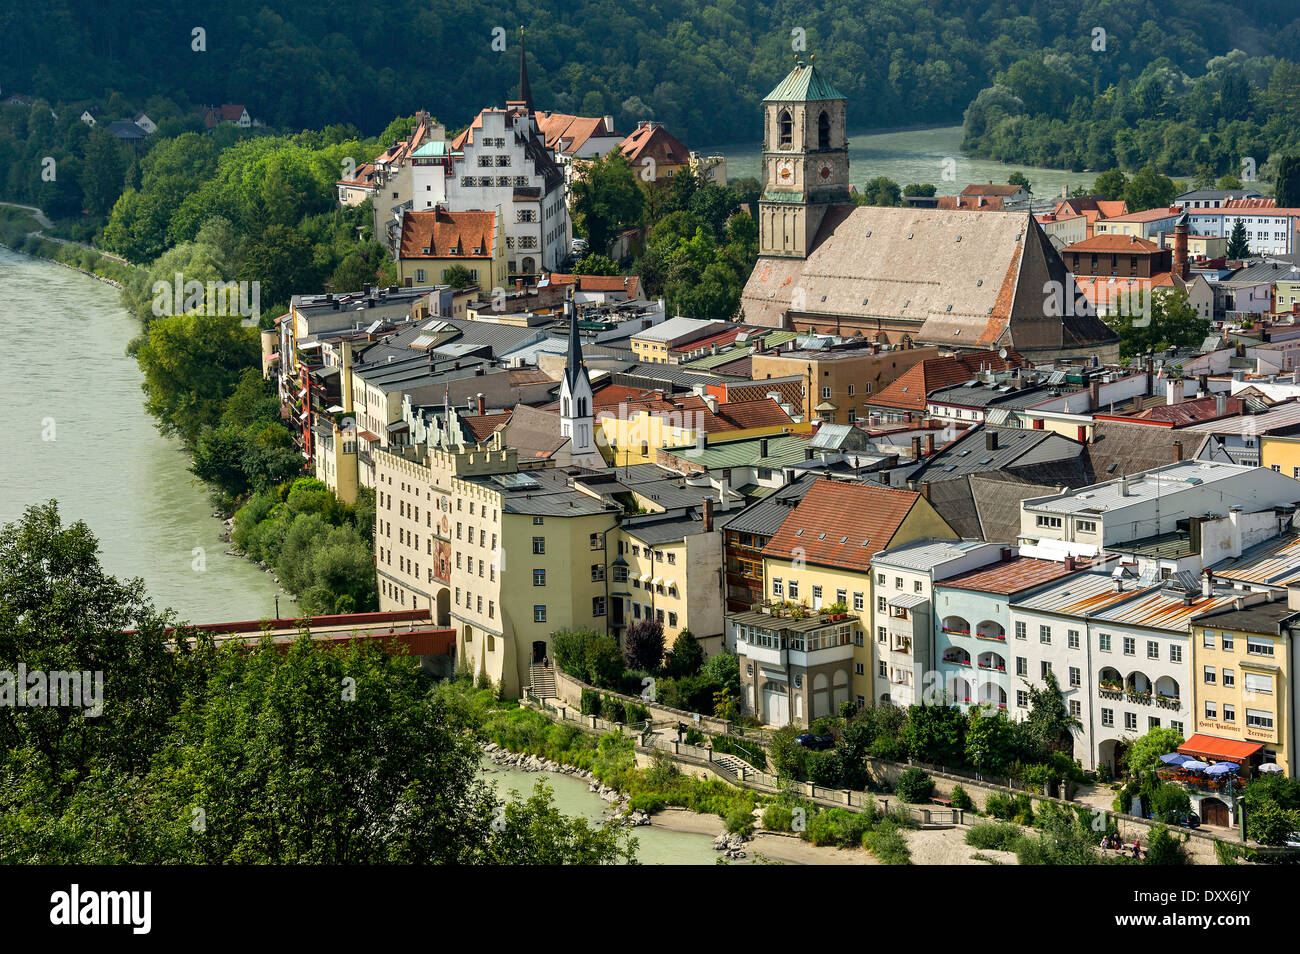 Wasserburg Am Inn Germania townscape wasserburg am inn upper stock photos & townscape